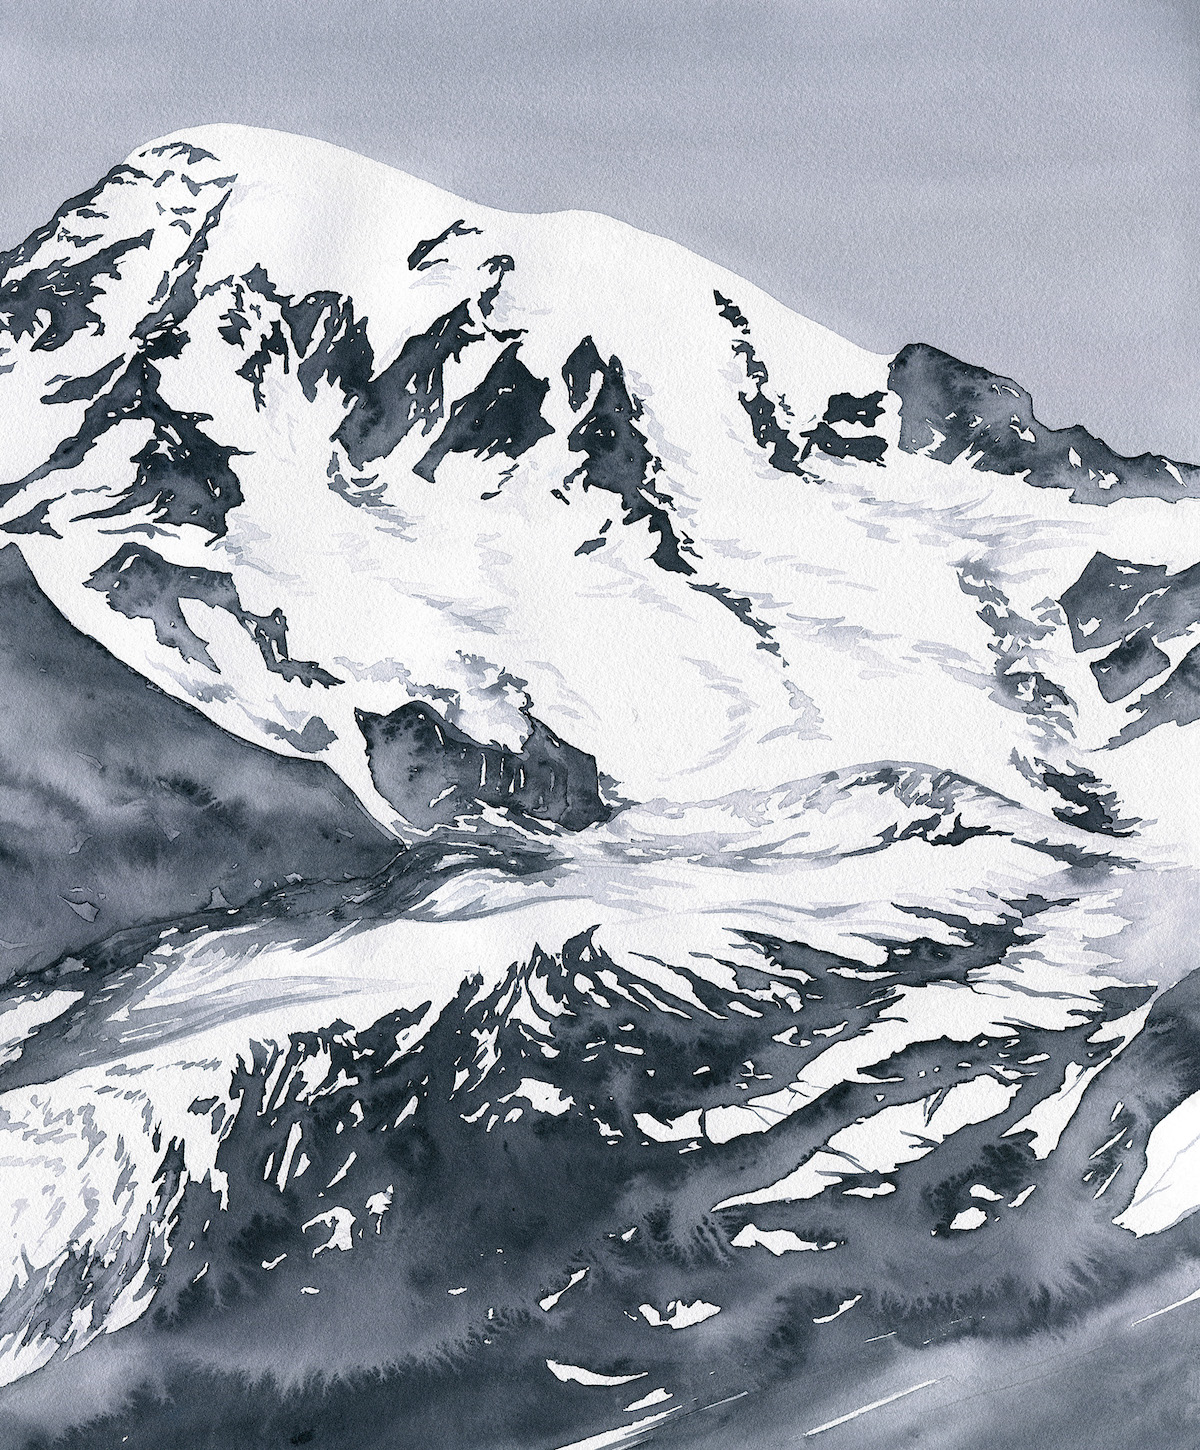 [1 of 2] Mt. Rainier, 1890 vs. 2018. The artist recounts: These paintings illustrate the recession of the Nisqually Glacier from 1890 to 2018. The 1890 painting is based on an image found in a photographic analysis by Fred Veatch. According to geomorphologist Paul Kennard, the Nisqually Glacier is losing up to a quarter mile of length each year. [Artwork] Claire Giordano